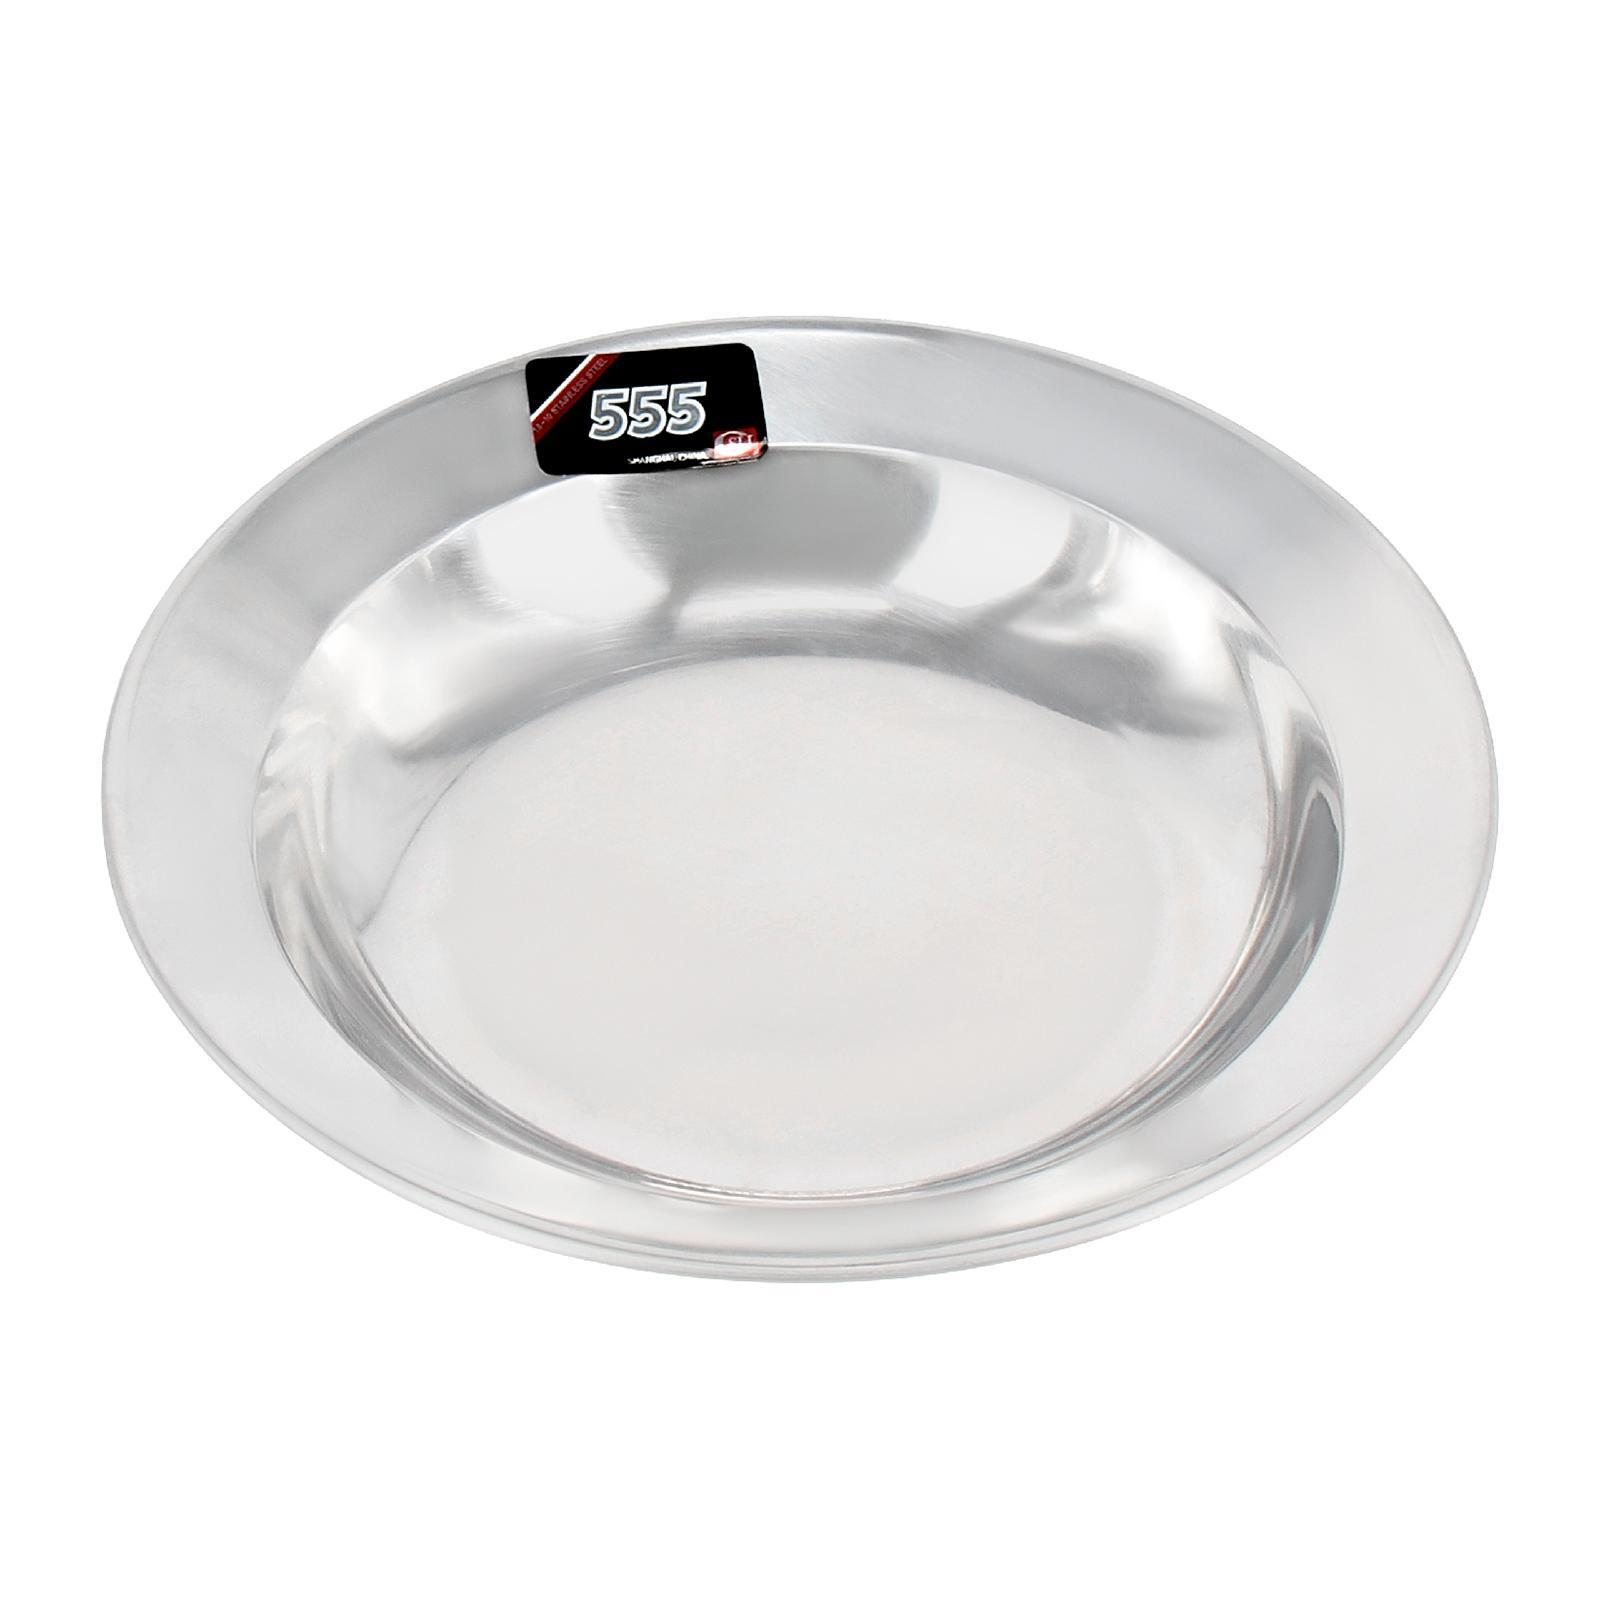 555 Stainless Steel Soup Plate 20 CM